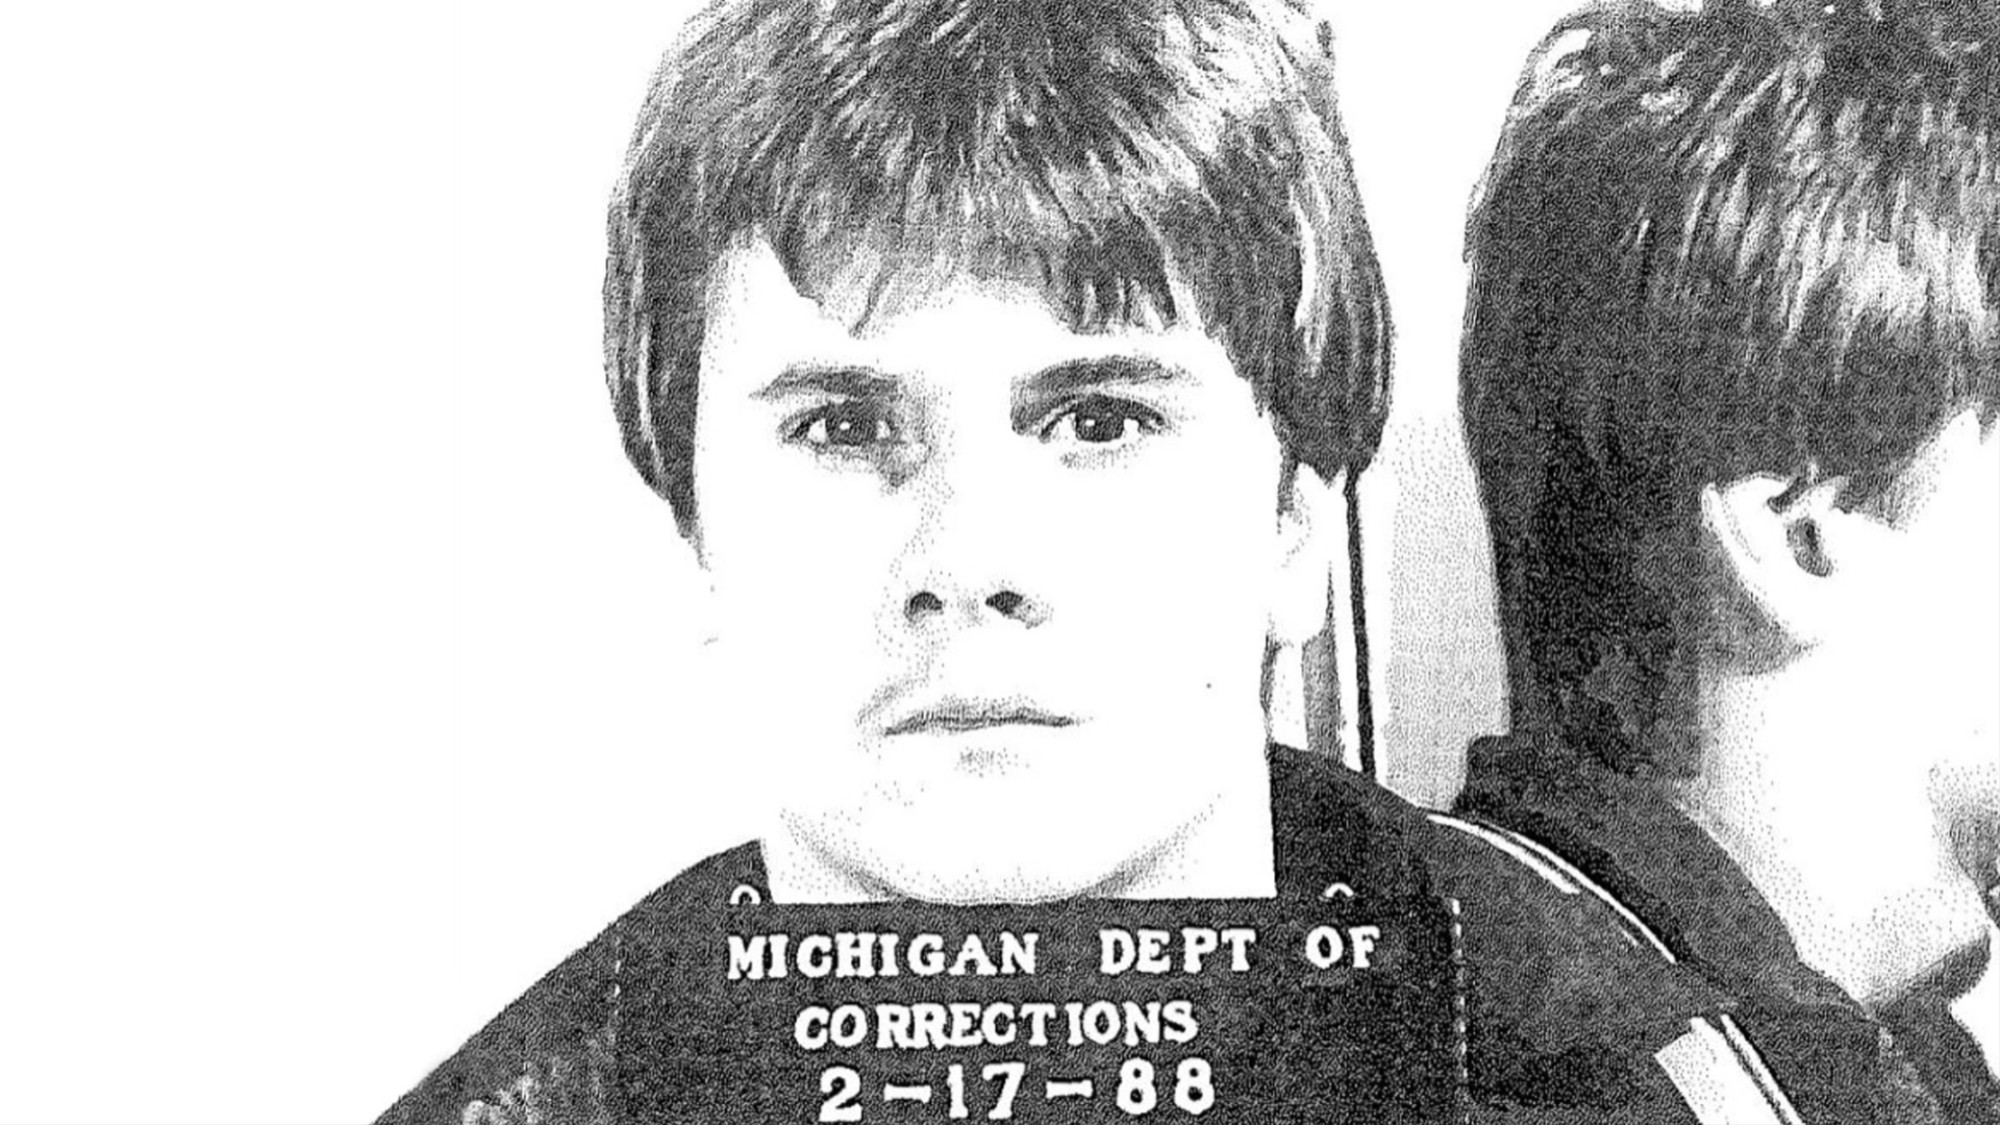 A New True-Crime Doc About 'White Boy' Rick Will Make You Madder